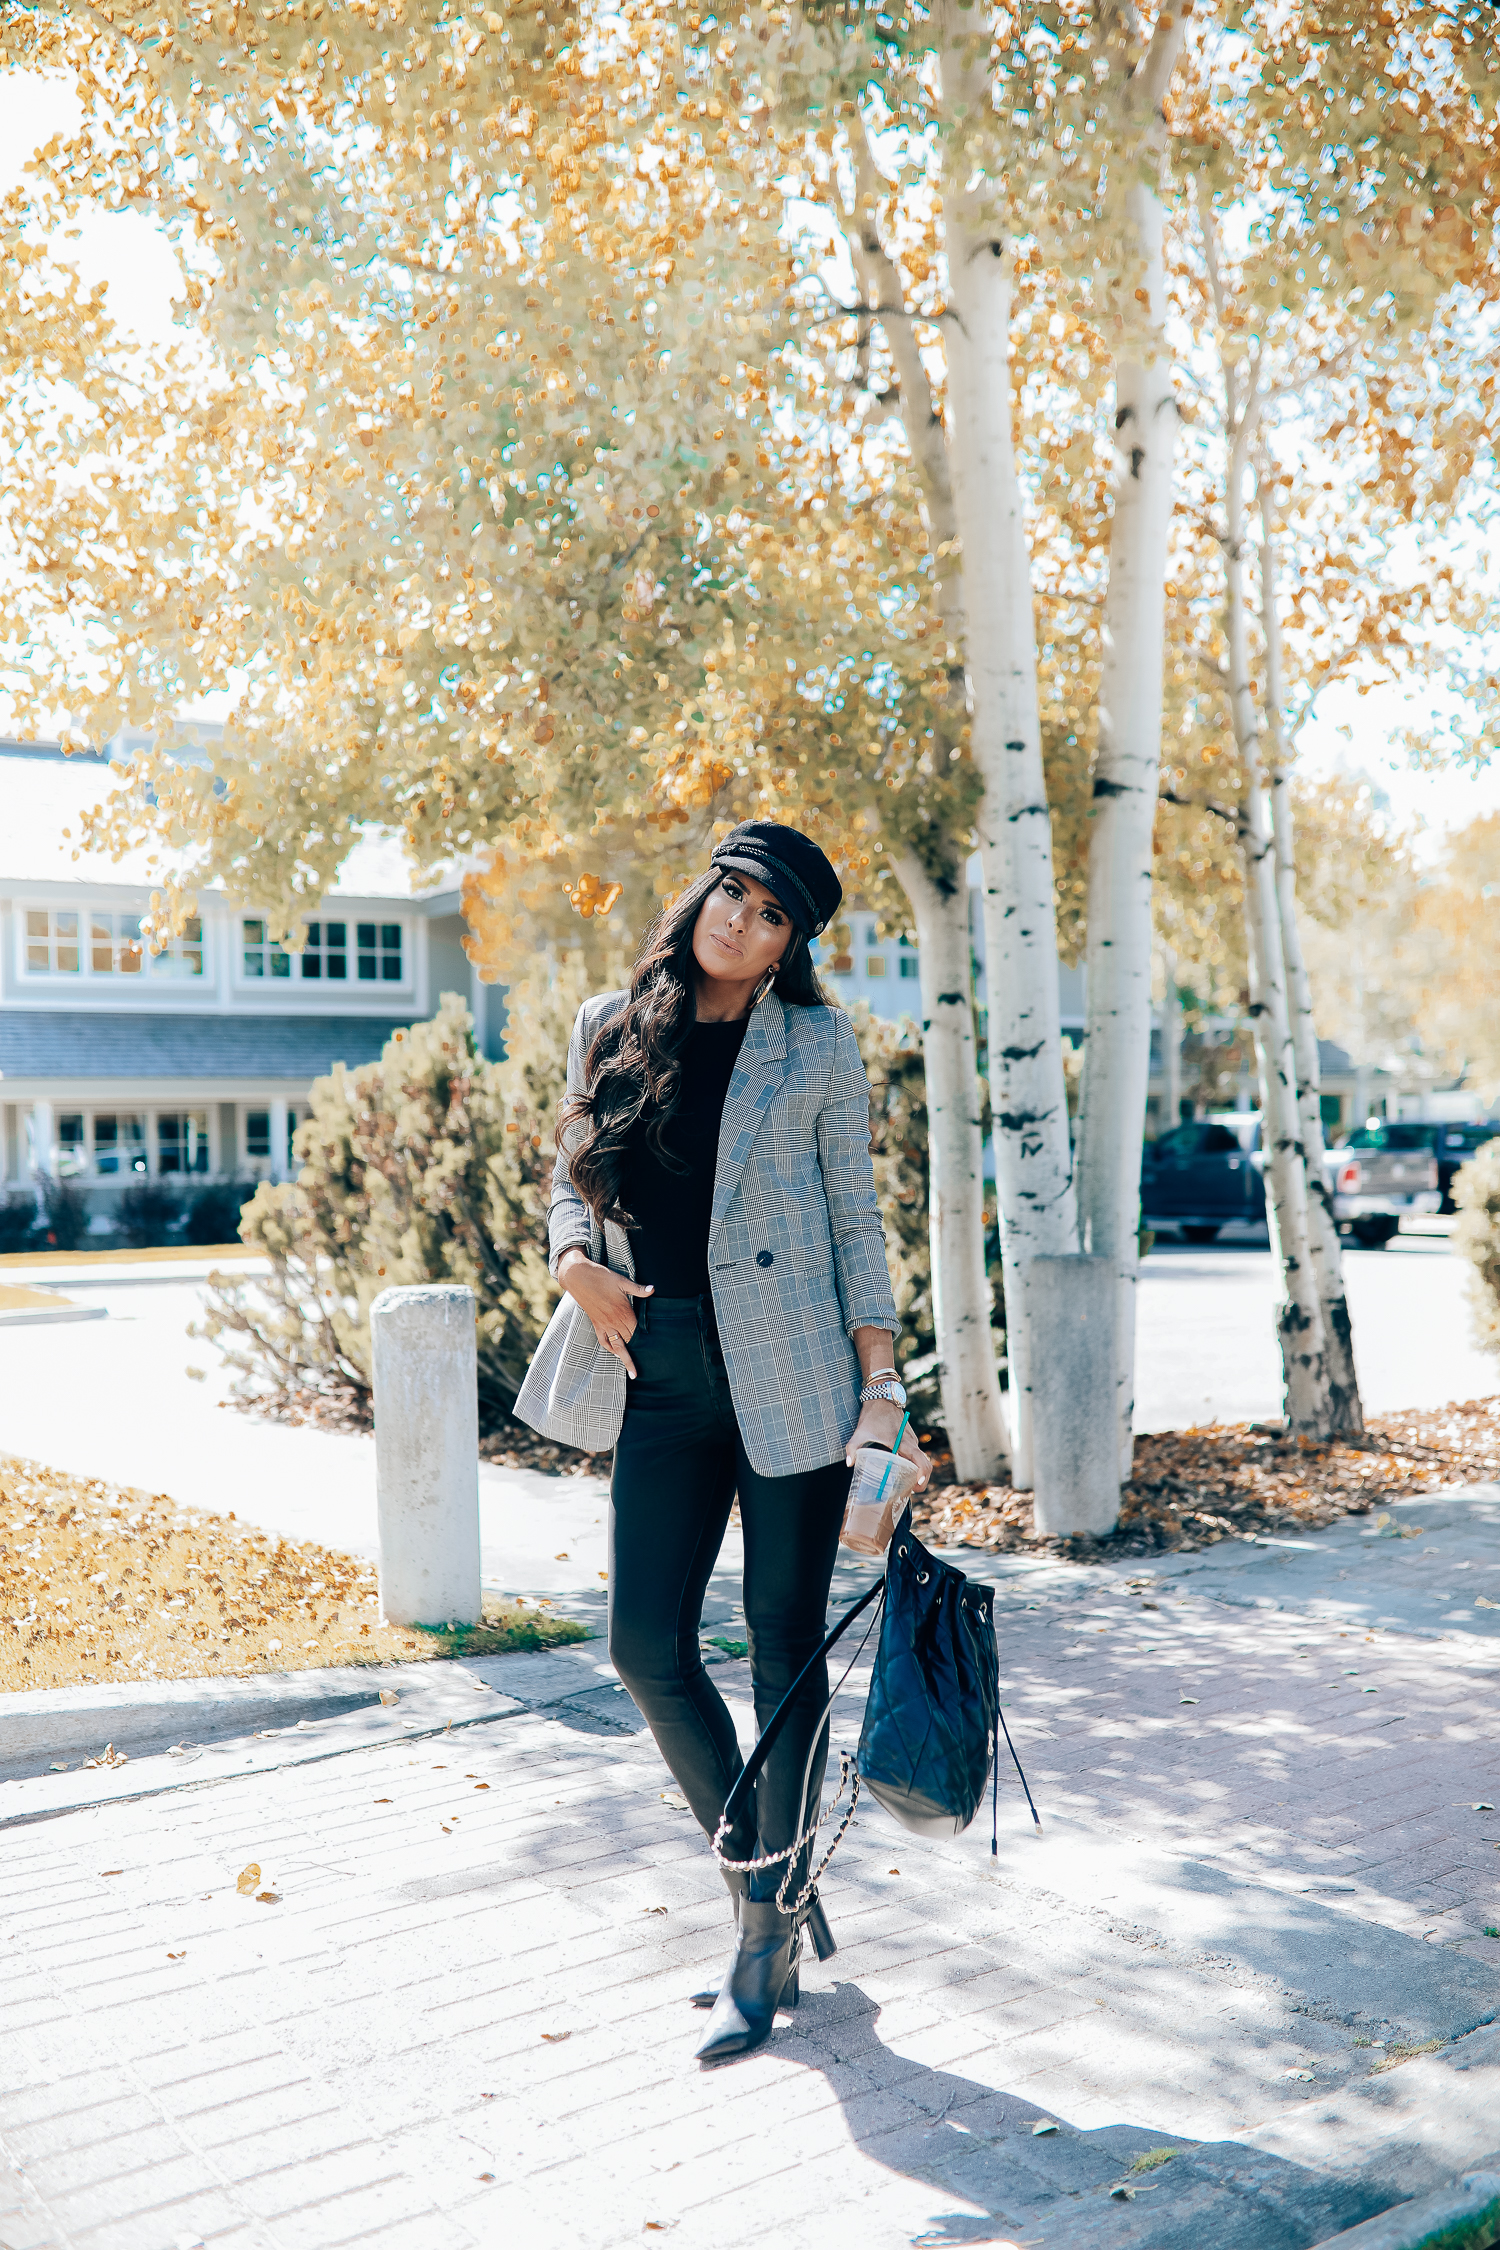 Oversized plaid blazer styled for Fall by top US fashion blog, The Sweetest Thing: image of a woman wearing an Aqua oversized plaid blazer, Splendid long sleeve top, BlankNYC vegan leggings, Marc Fisher booties, Chanel backpack, Baker boy cap, a Rolex watch, Argento Vivo earrings, and Cartier bracelets